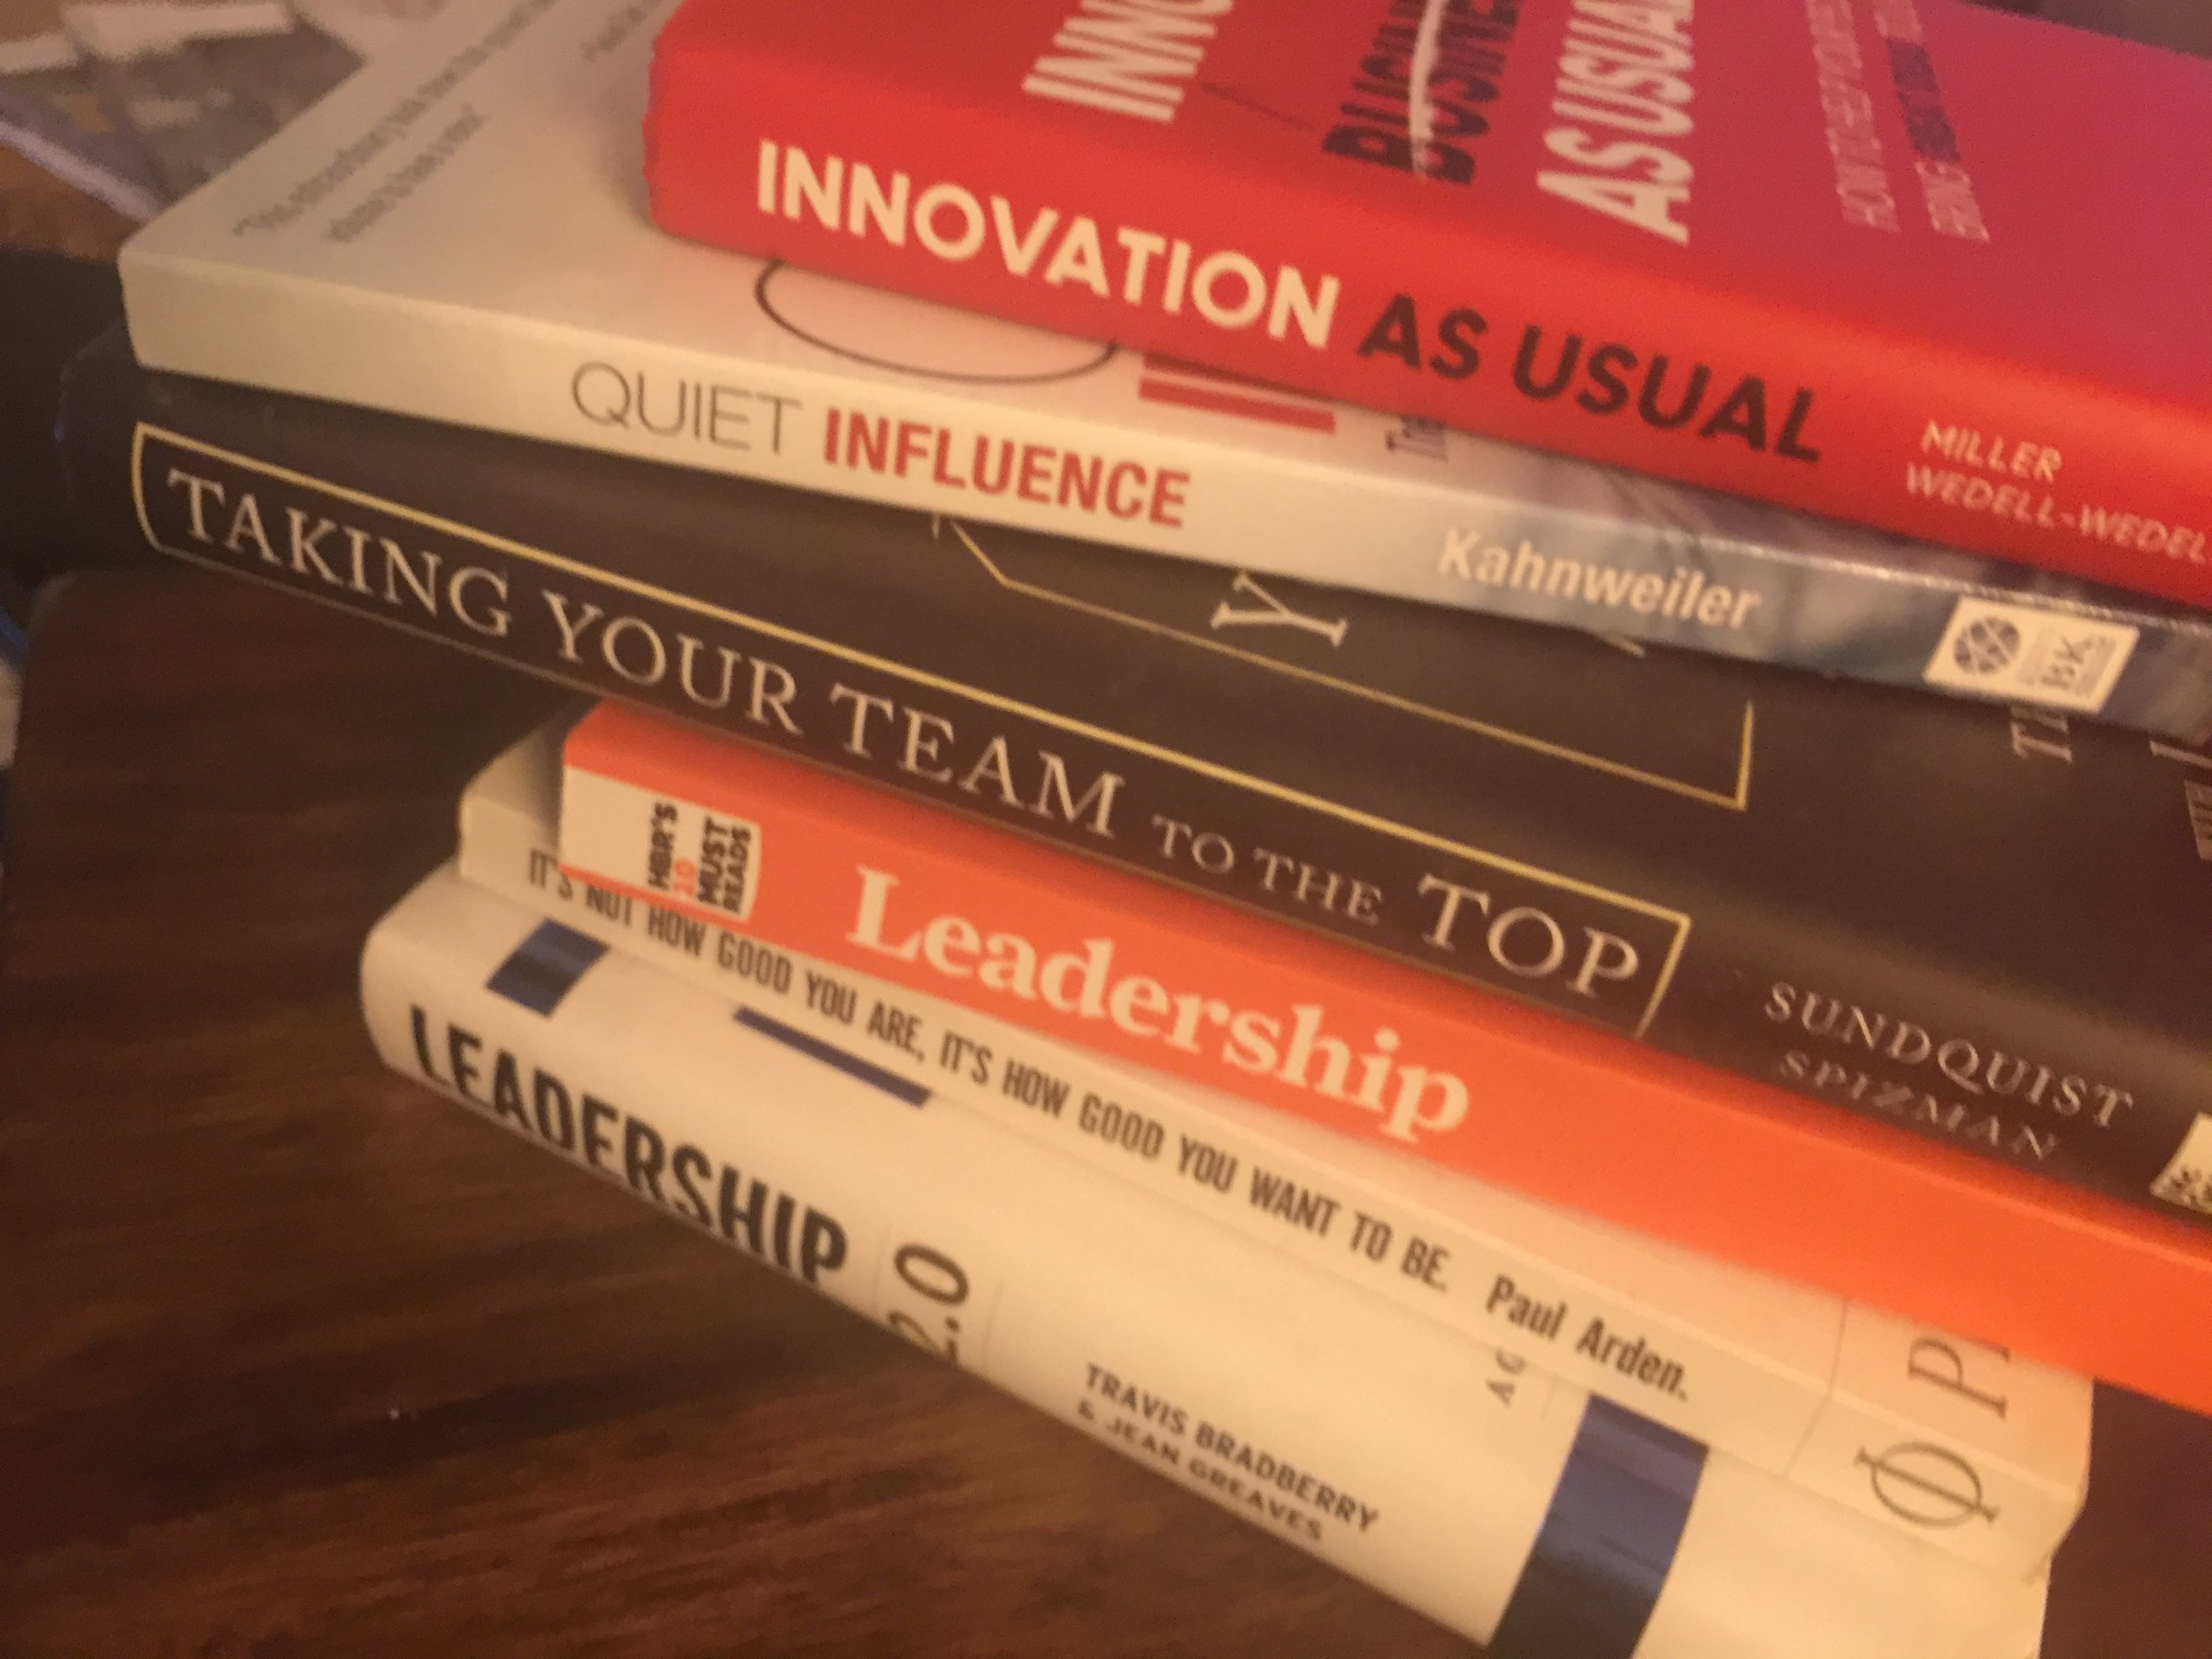 From my personal office library, books on leadership.